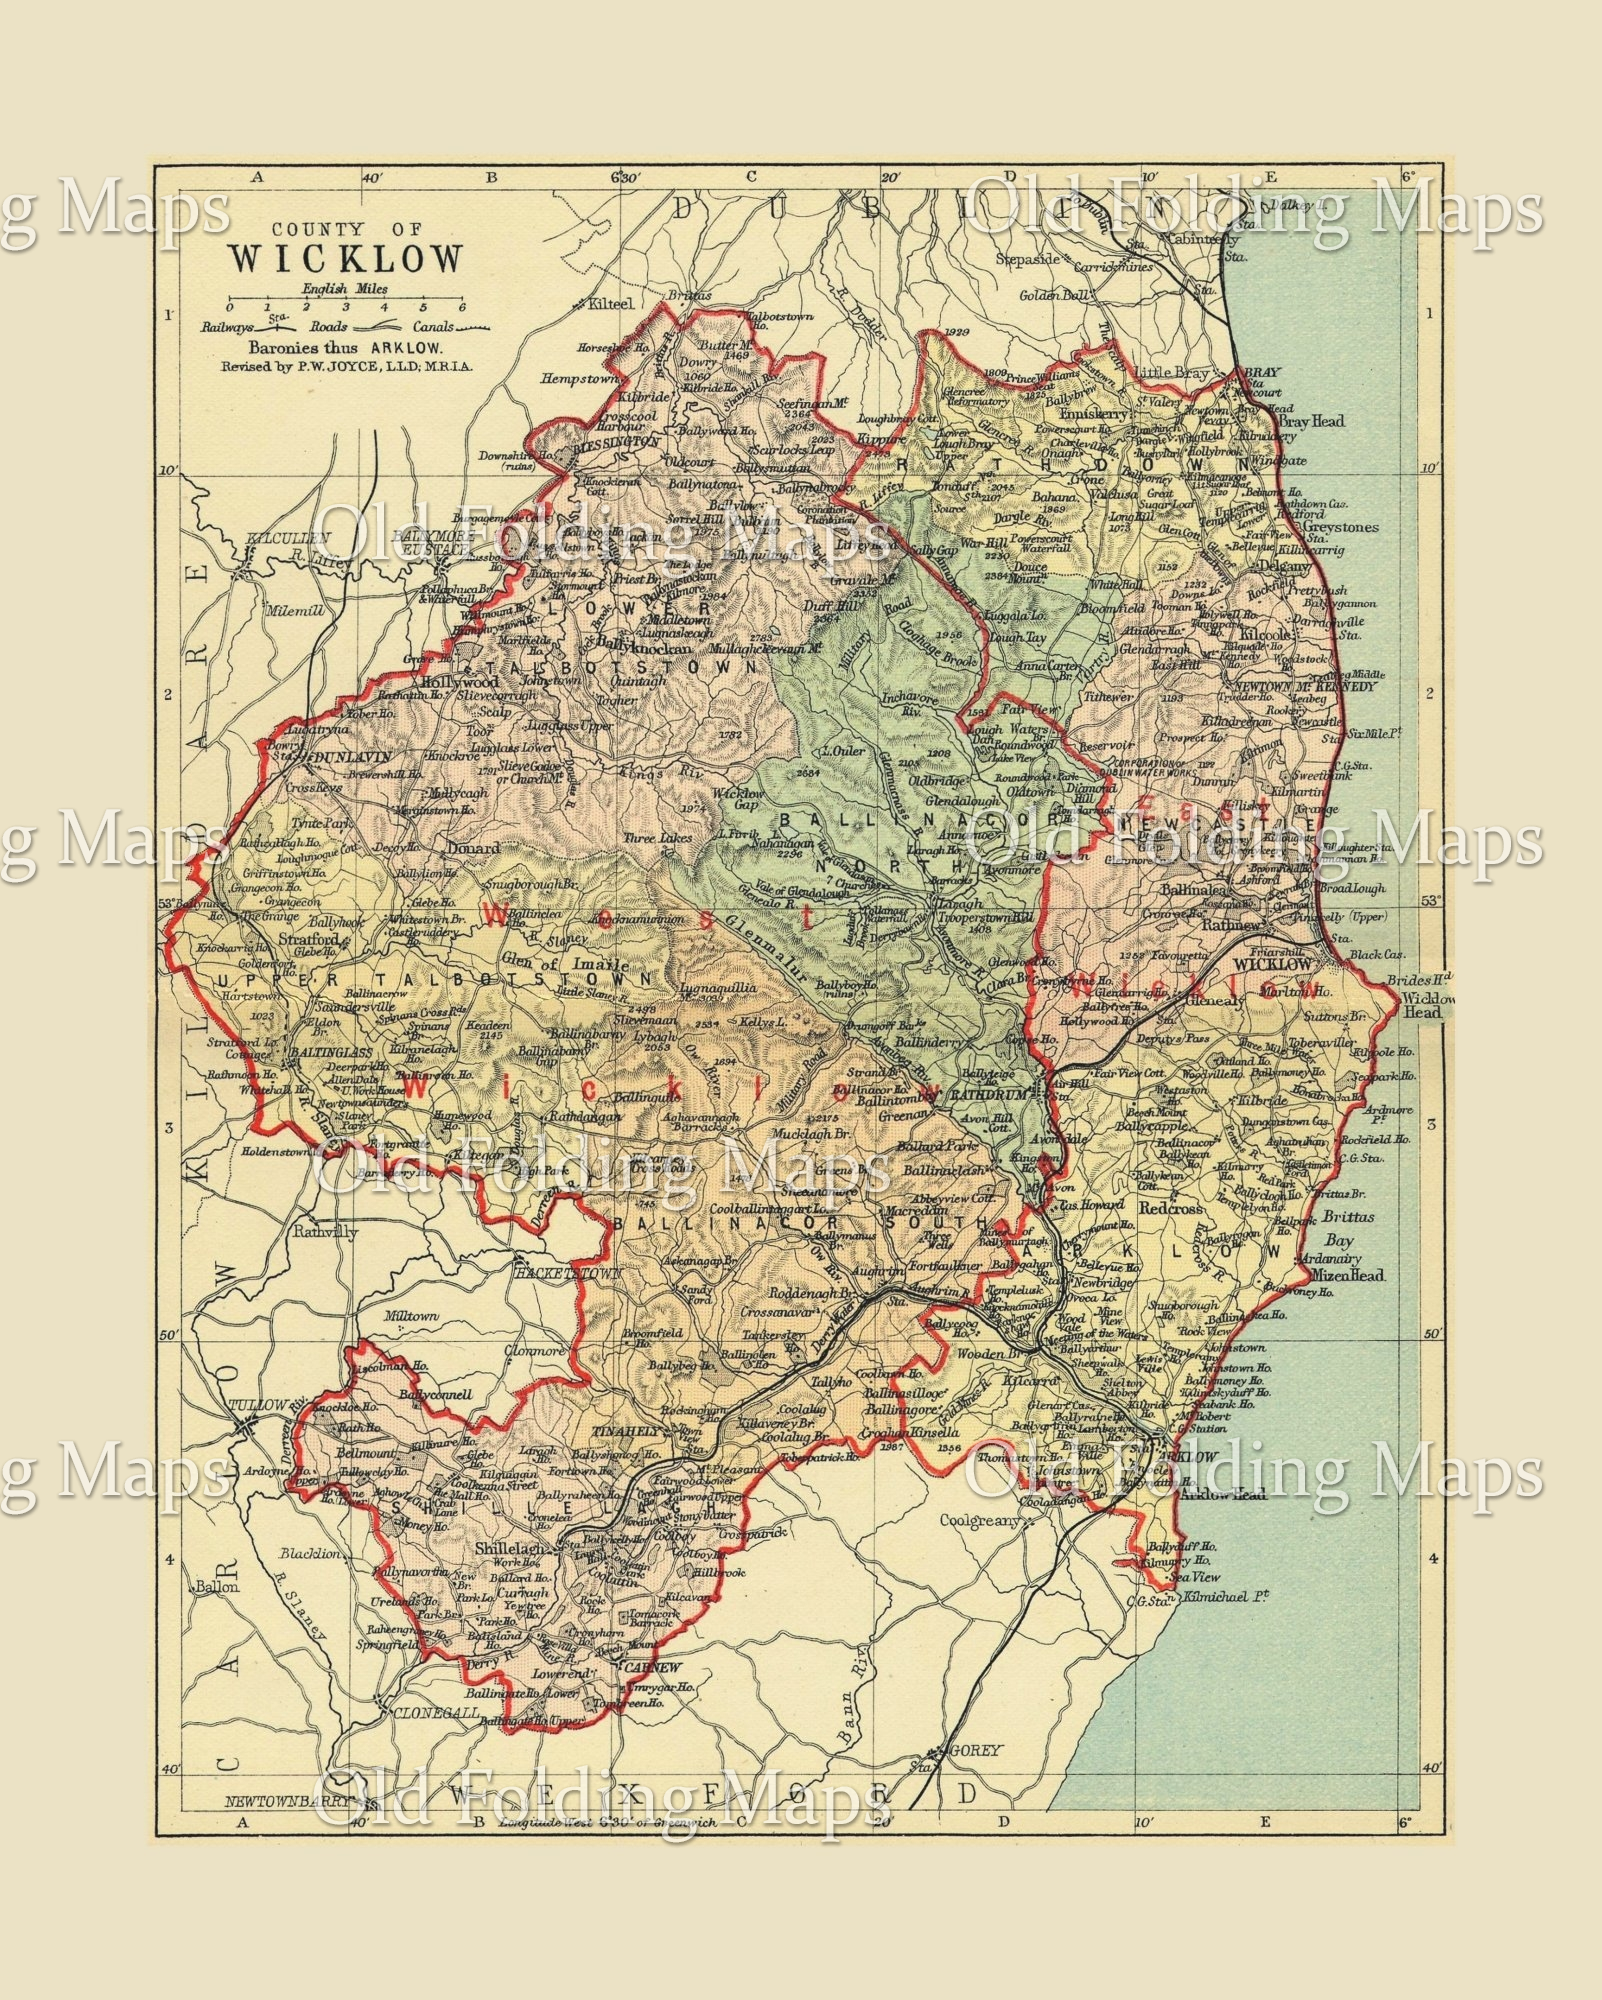 Antique County Map of Wicklow, Ireland circa 1884